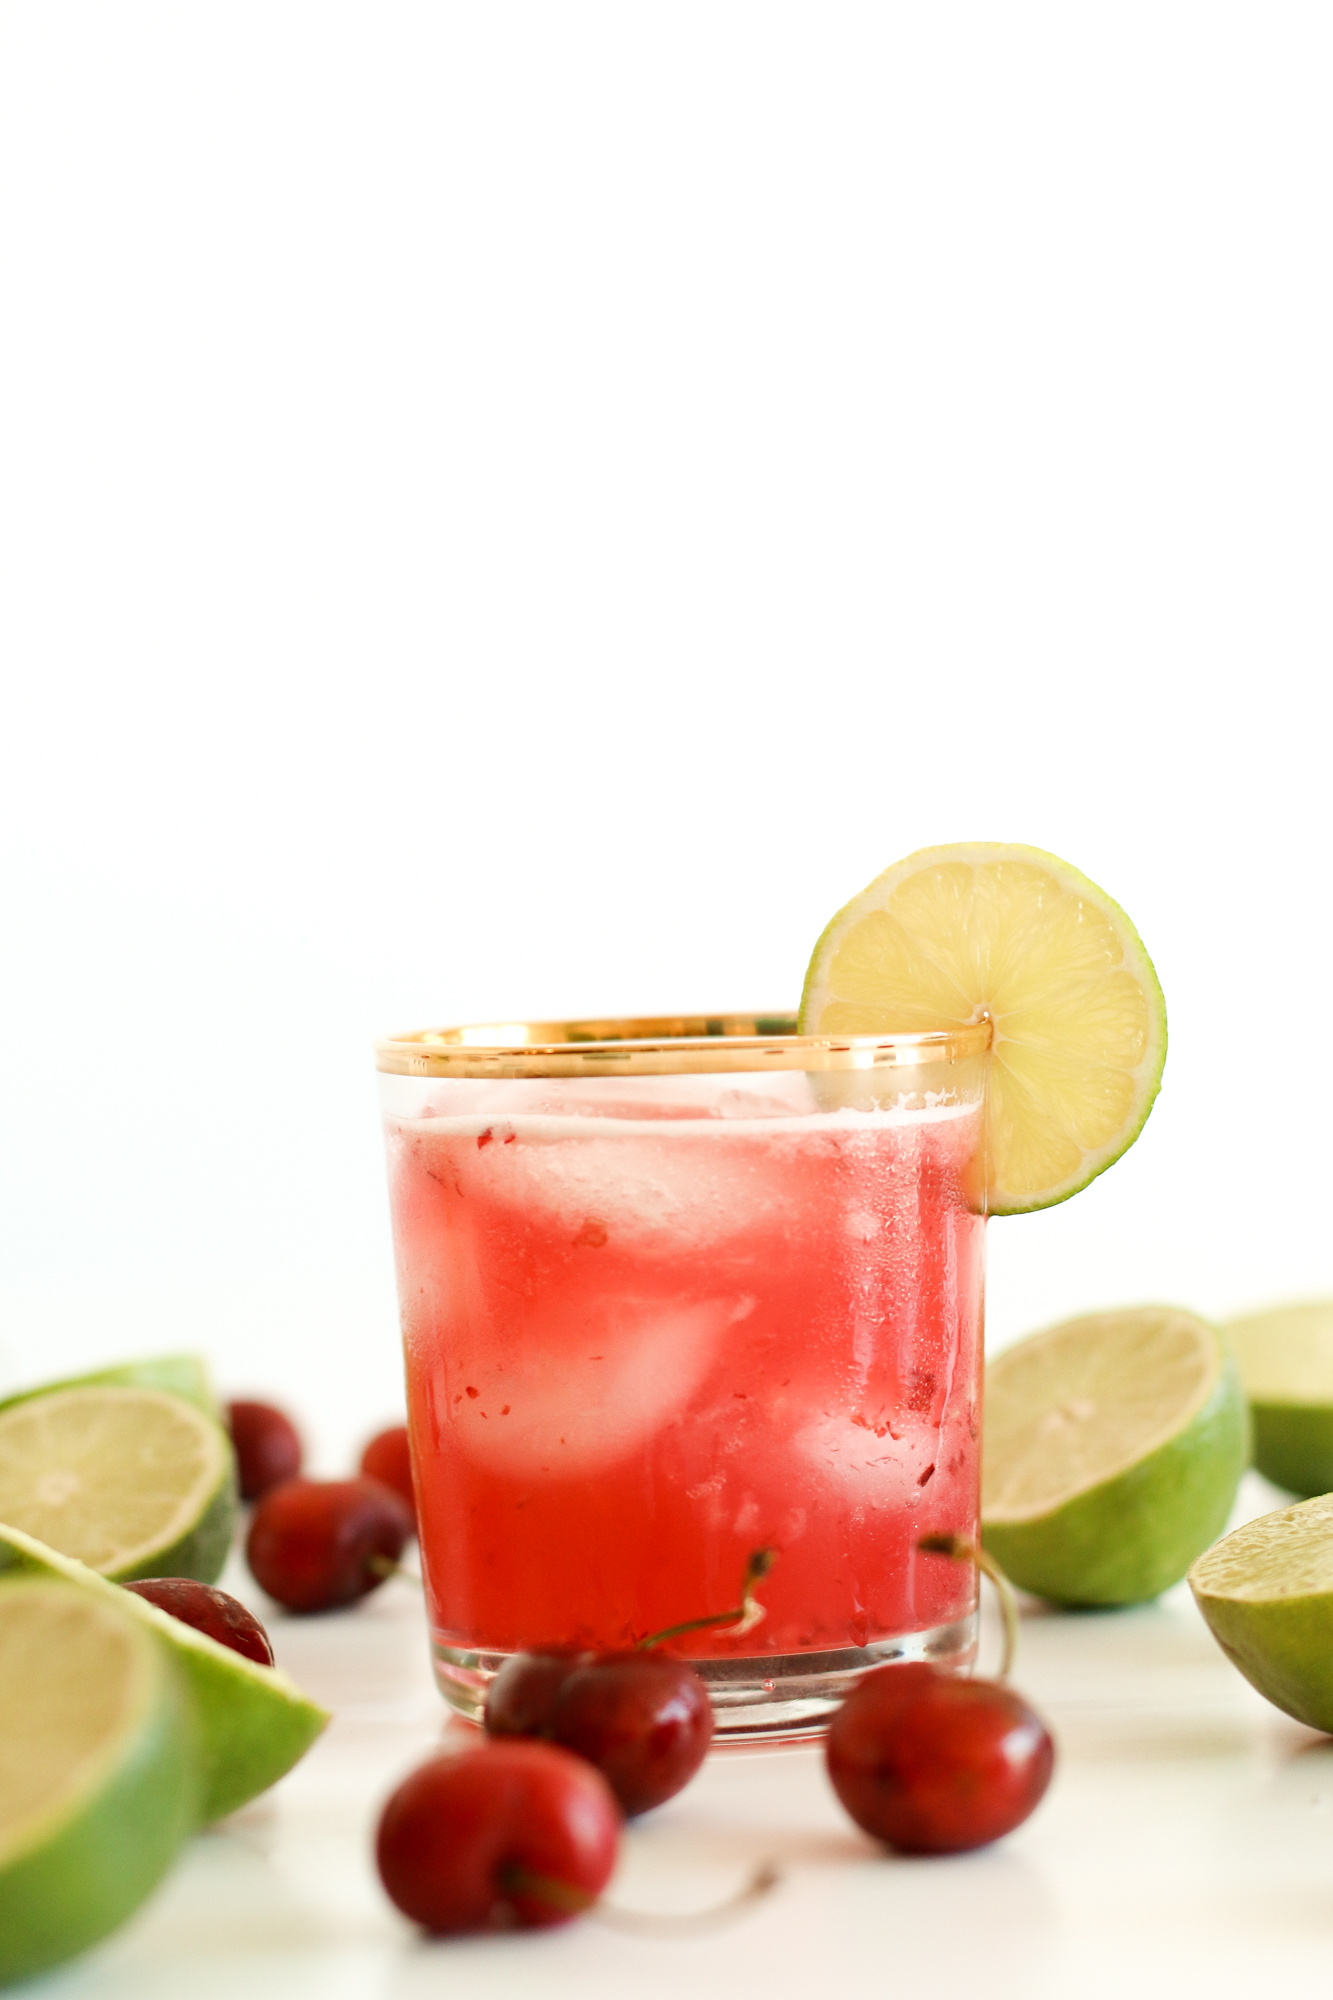 Cherry Lime Margaritas Recipe using IZZE Sparkling Cherry Lime.